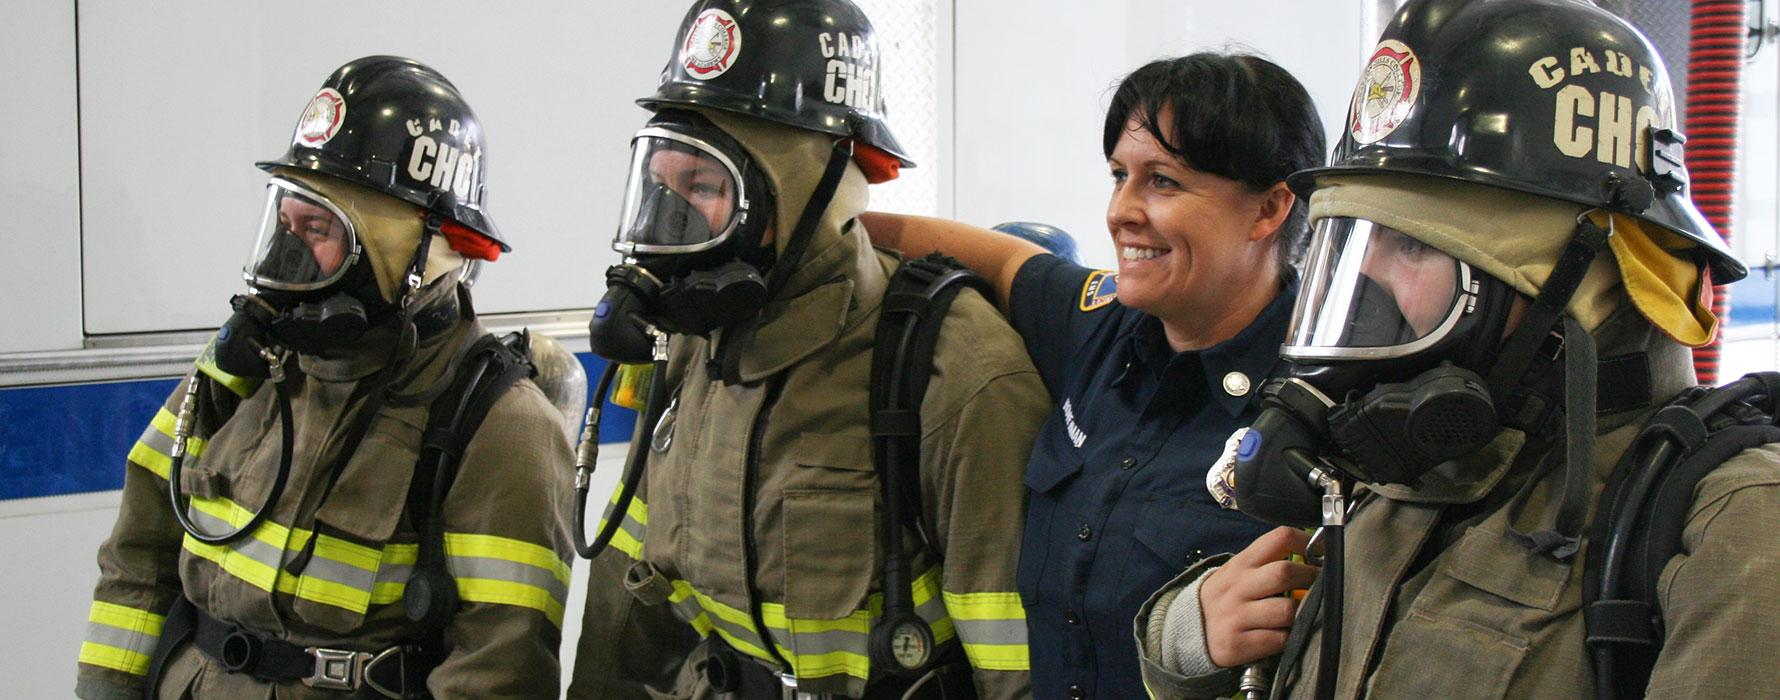 Women in firefighting gear